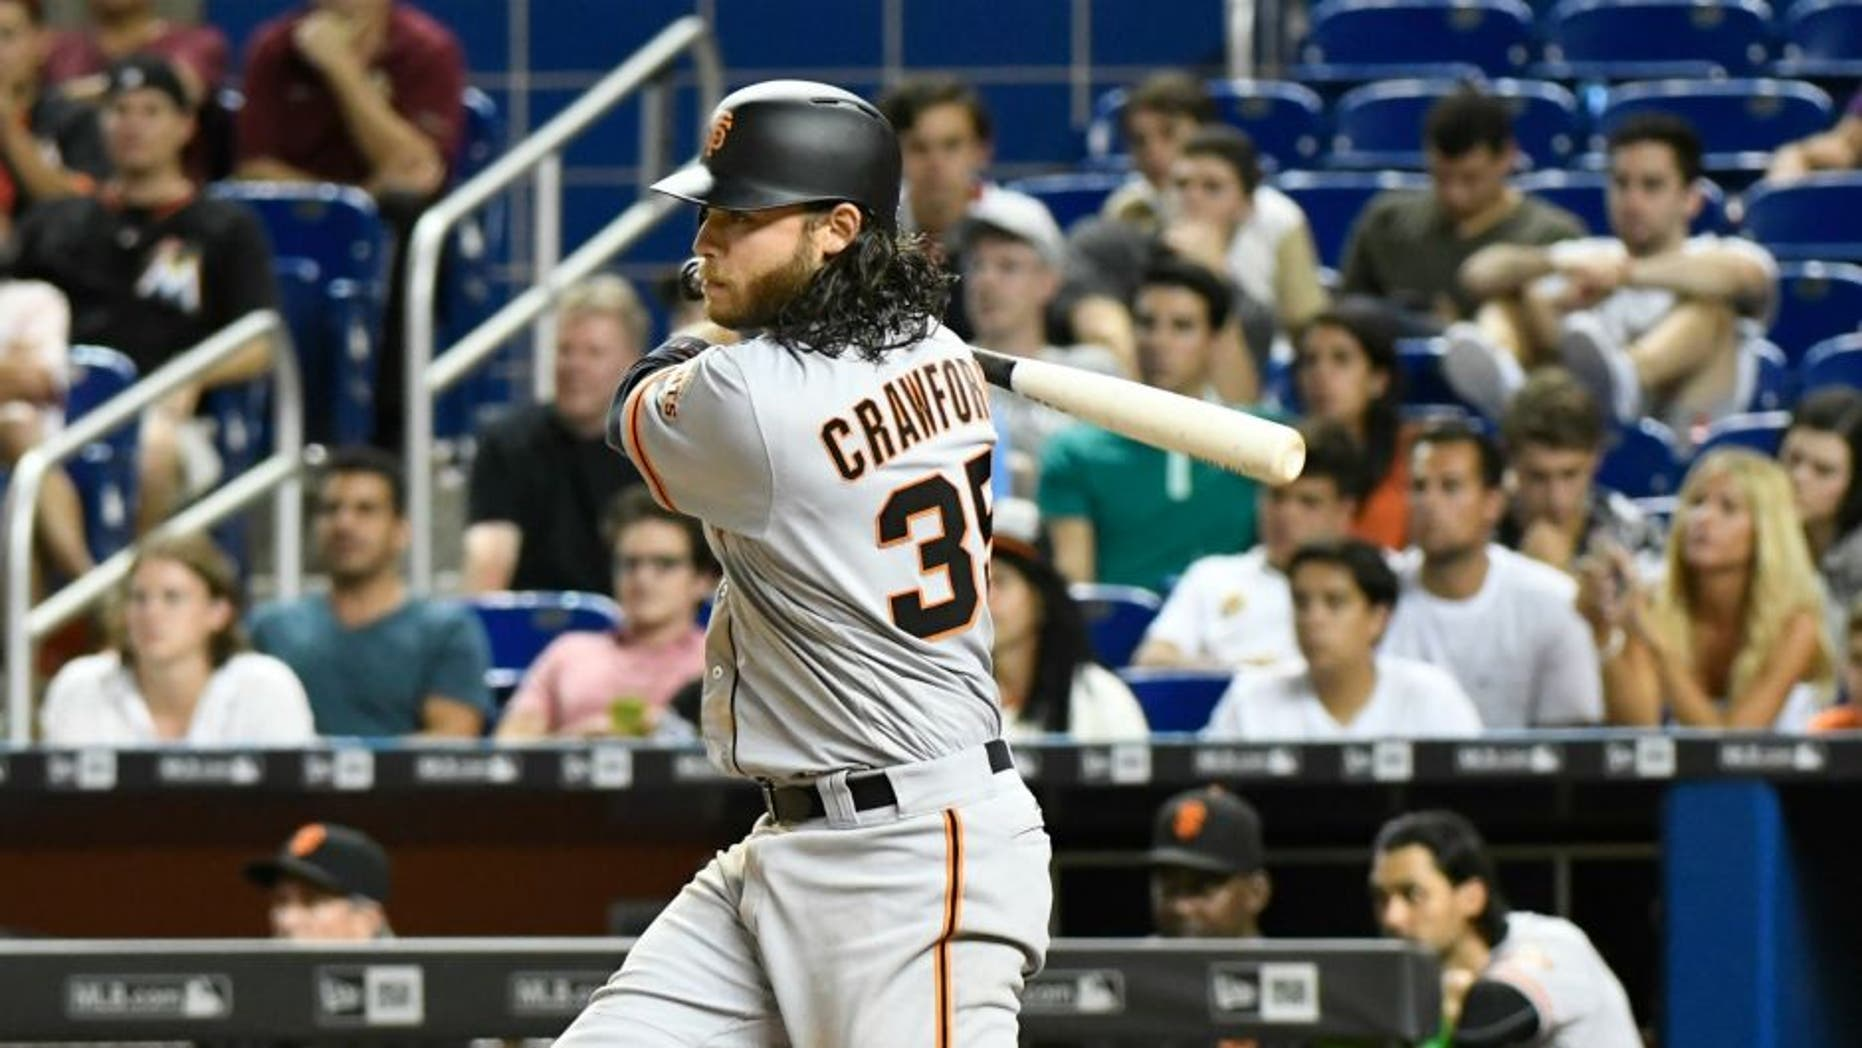 MIAMI, FL - AUGUST 08: Brandon Crawford #35 of the San Francisco Giants hit a base hit in the top of the 14th inning to score Brandon Belt #9 against the Miami Marlins at Marlins Park on August 8, 2016 in Miami, Florida. (Photo by Eric Espada/Getty Images) *** Local Caption *** Brandon Crawford